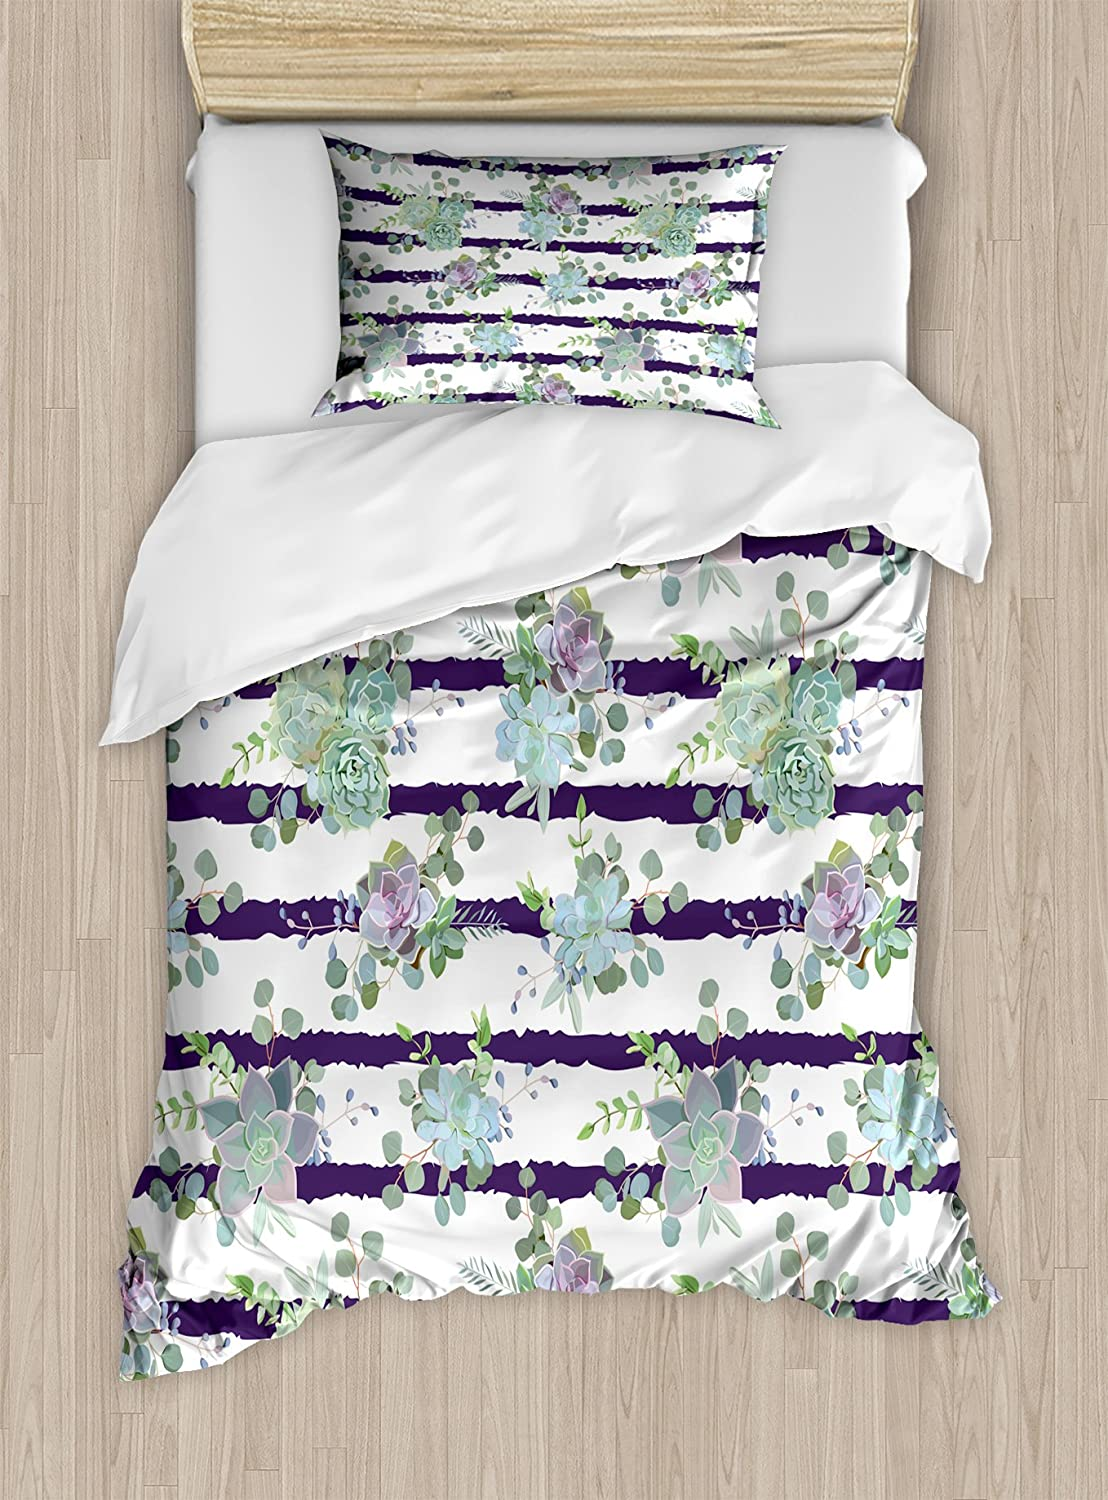 Ambesonne Succulent Duvet Cover Ranking TOP18 Set in M Ranking TOP11 Pattern Cactus Natural